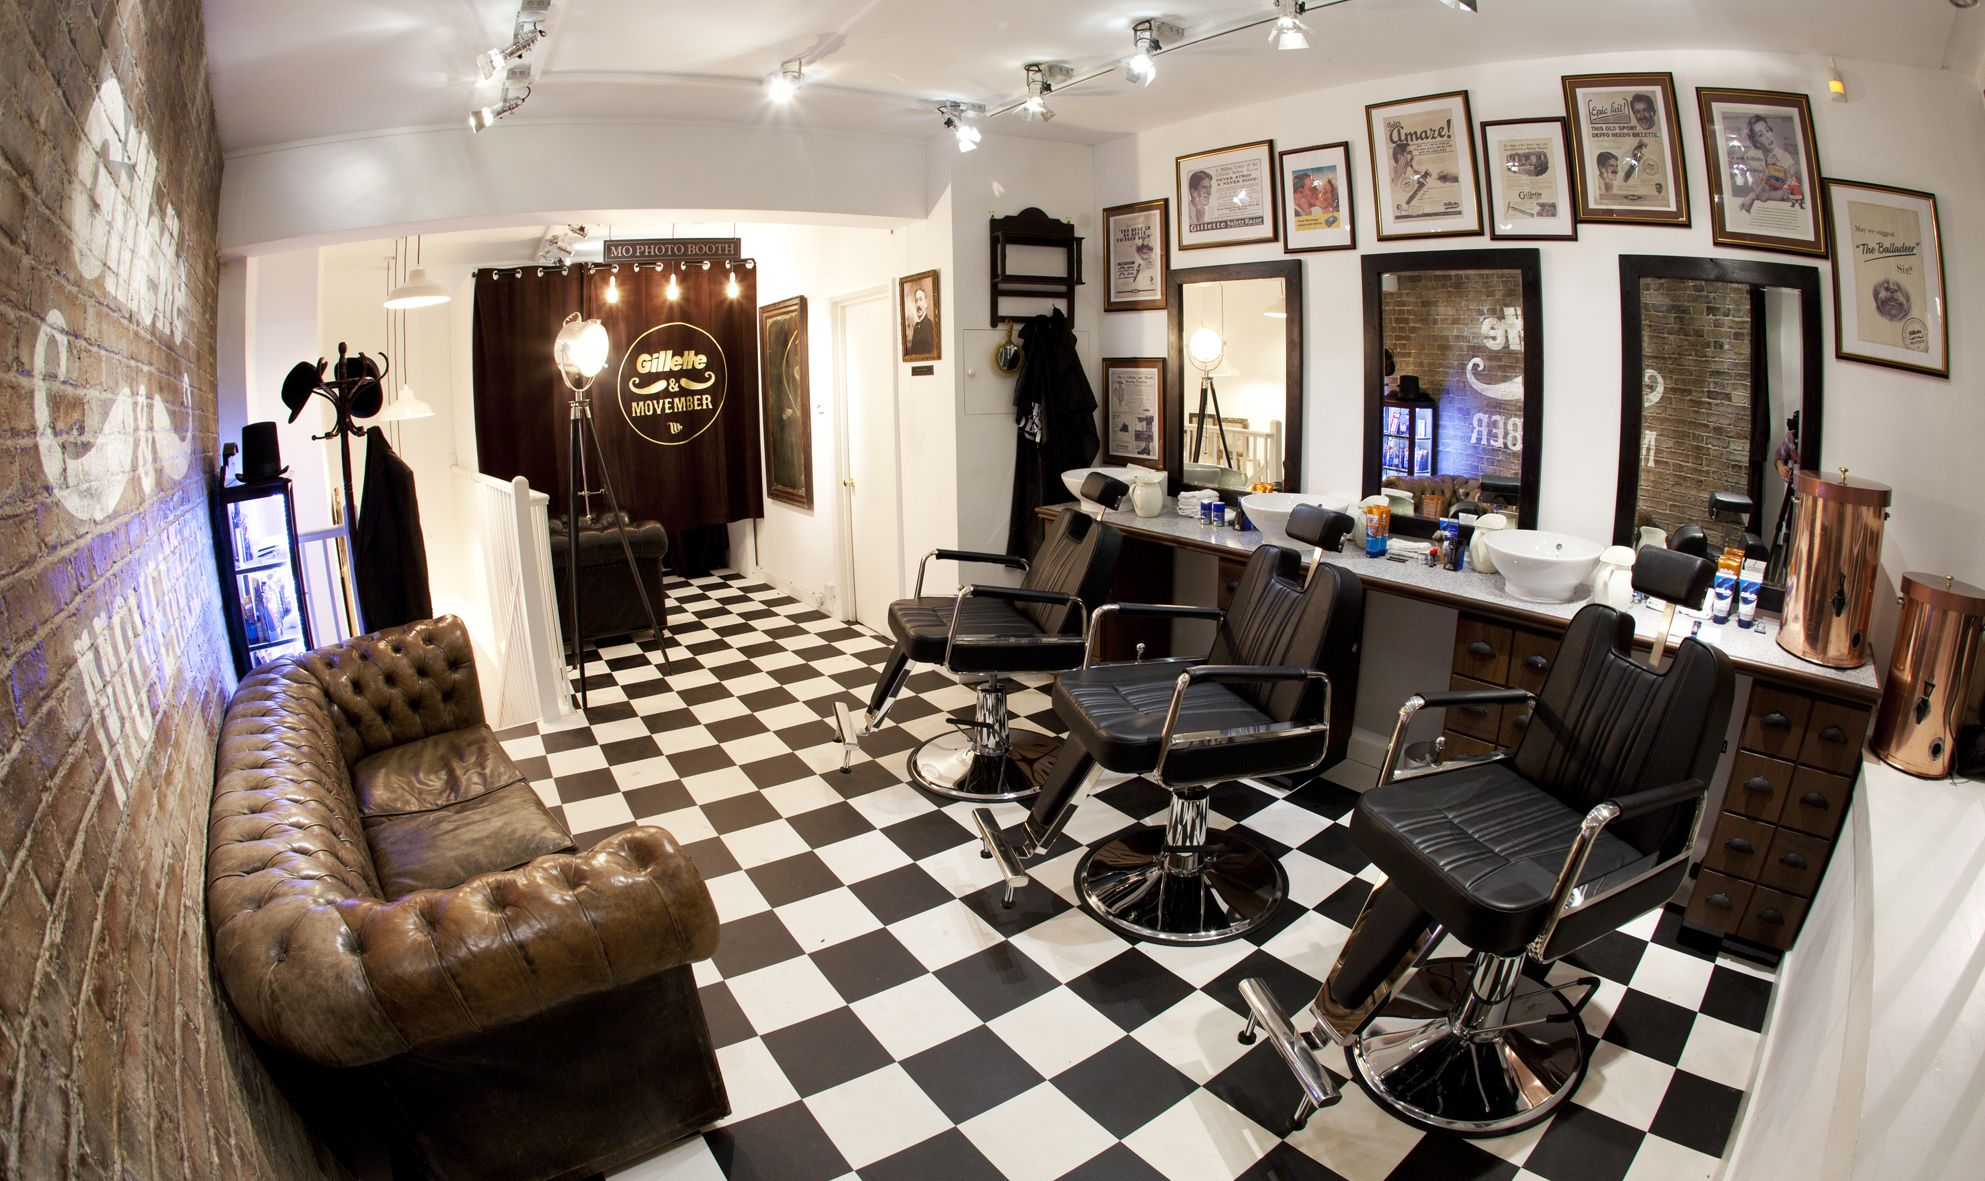 barber shop with black and white floor tiles barber pinterest barber shop barbershop. Black Bedroom Furniture Sets. Home Design Ideas